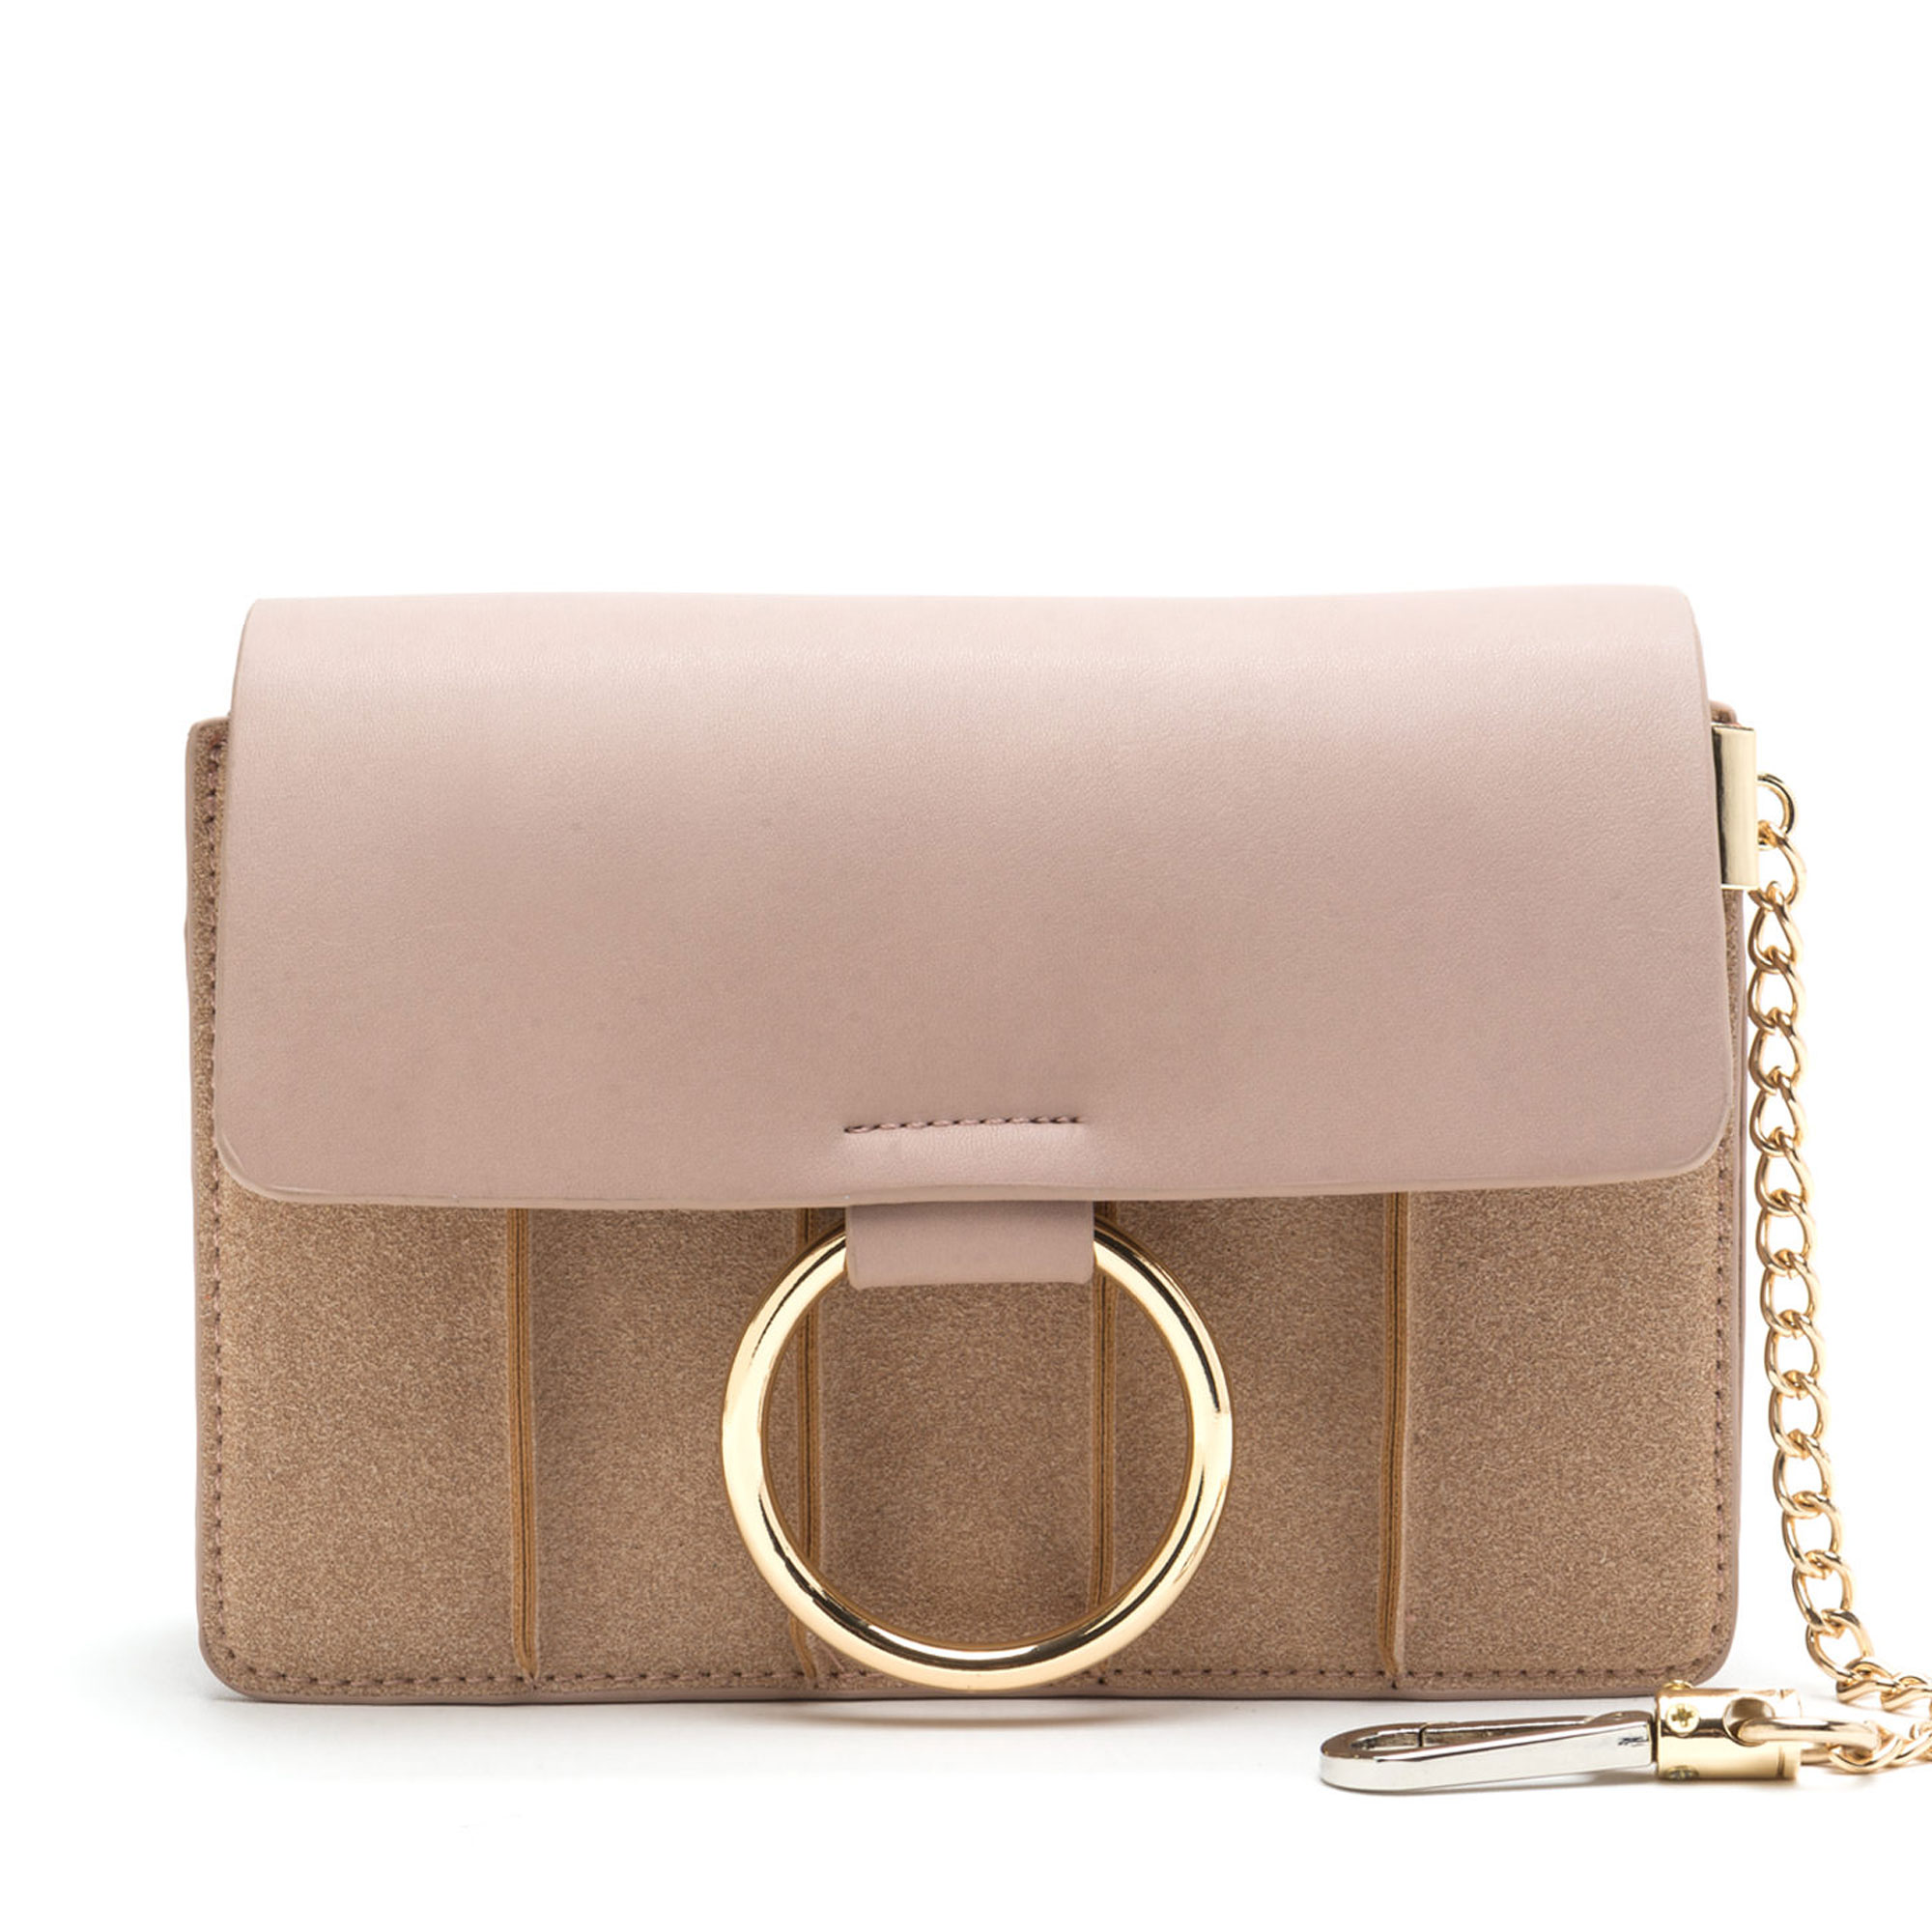 SPRING BAGS THAT LOOK EXPENSIVE - Gallerypink handbagCourtesy GoJane